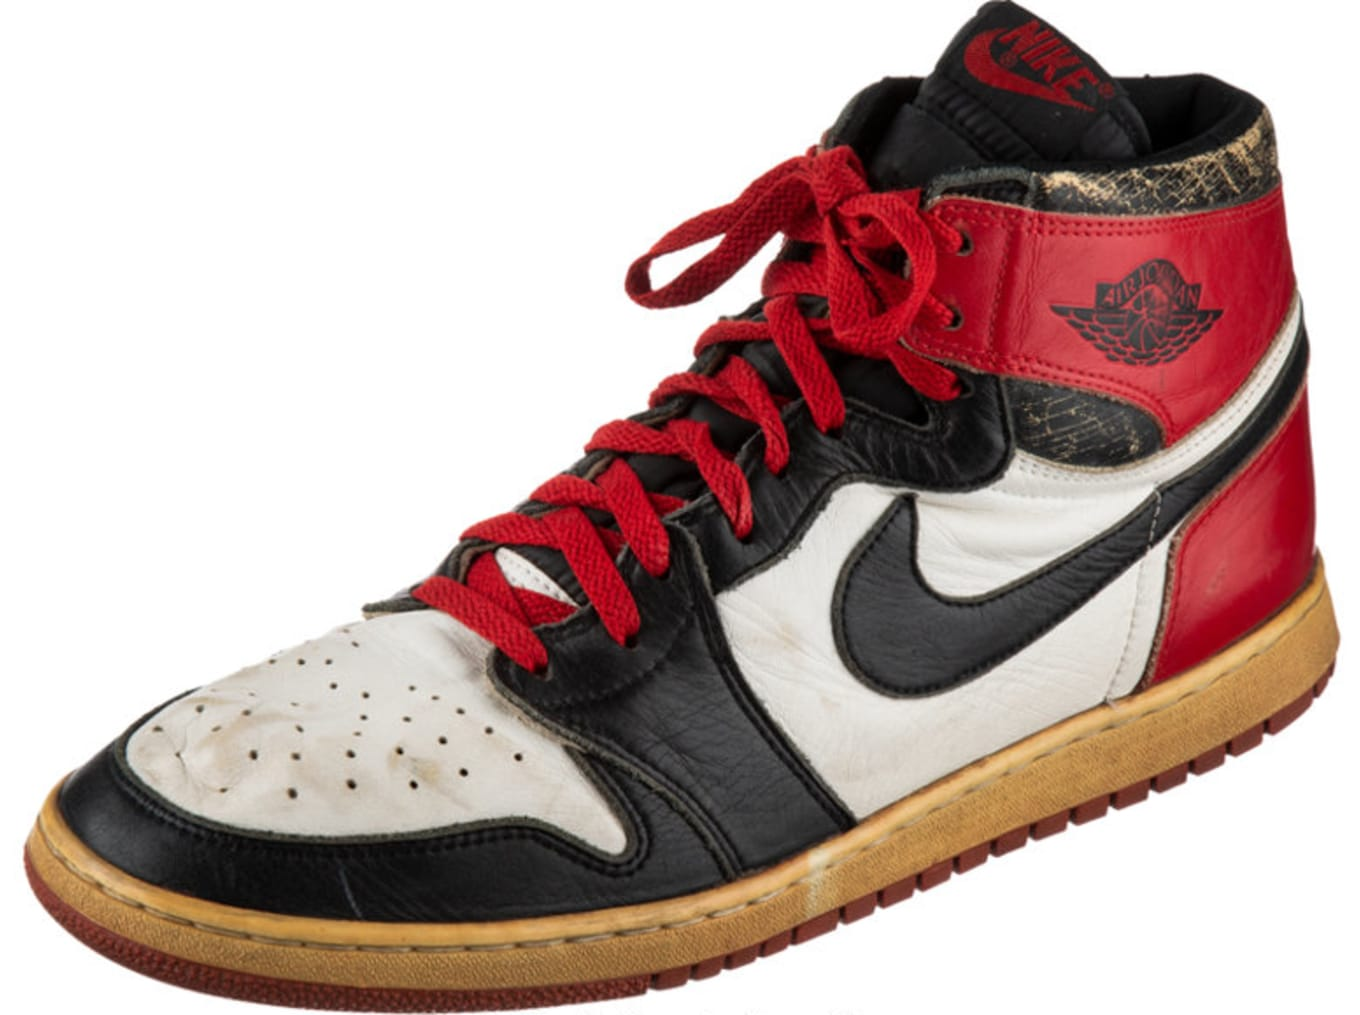 00bca16a2ae9bc Your Chance to Own One of Michael Jordan s Game-Worn Air Jordan 1s.